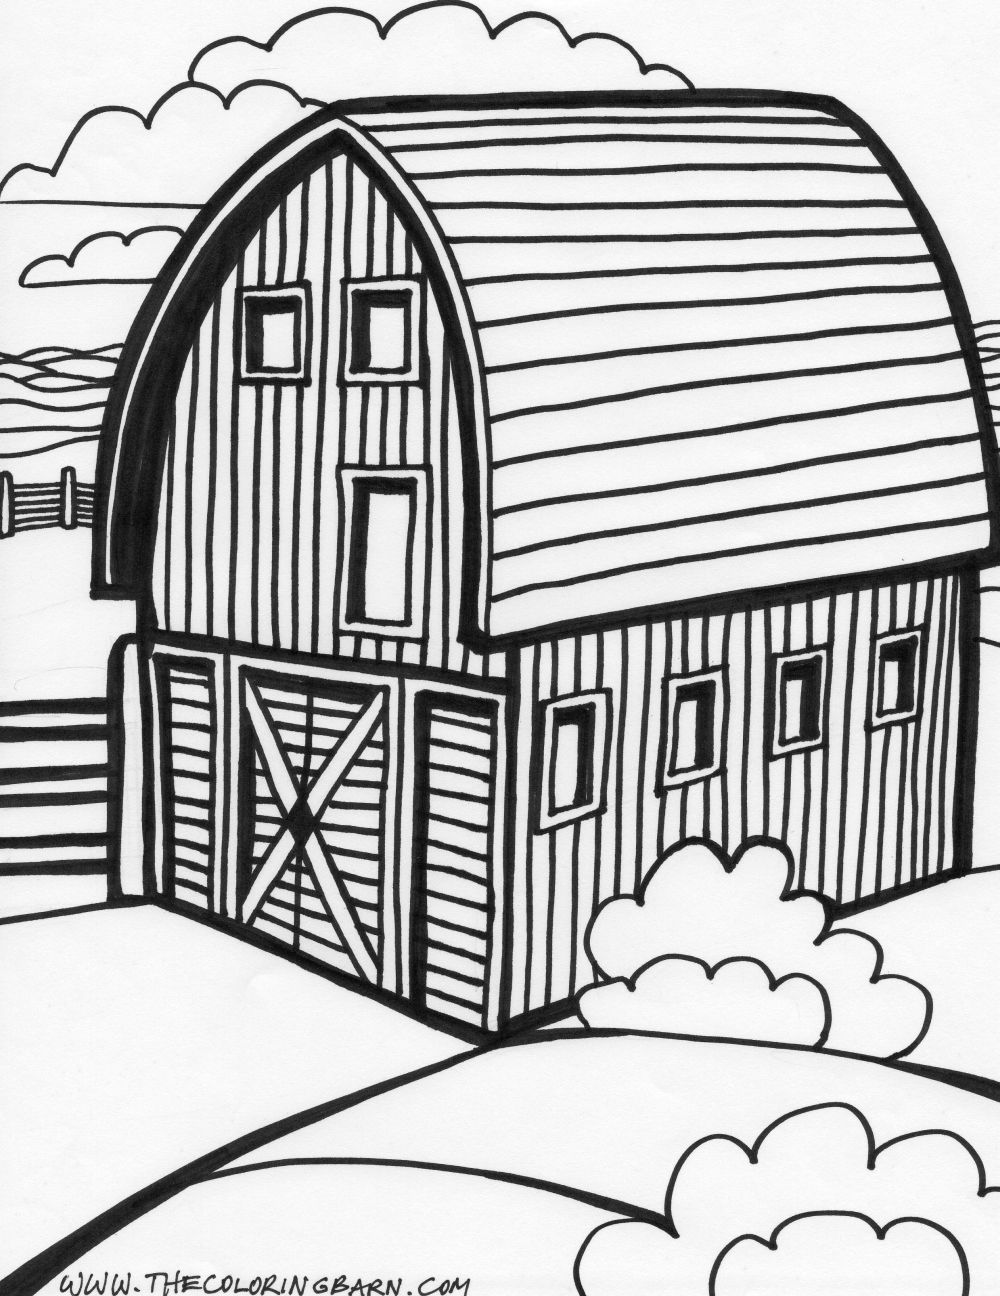 Barn Church House Black And White Clipart - Clipground-1598